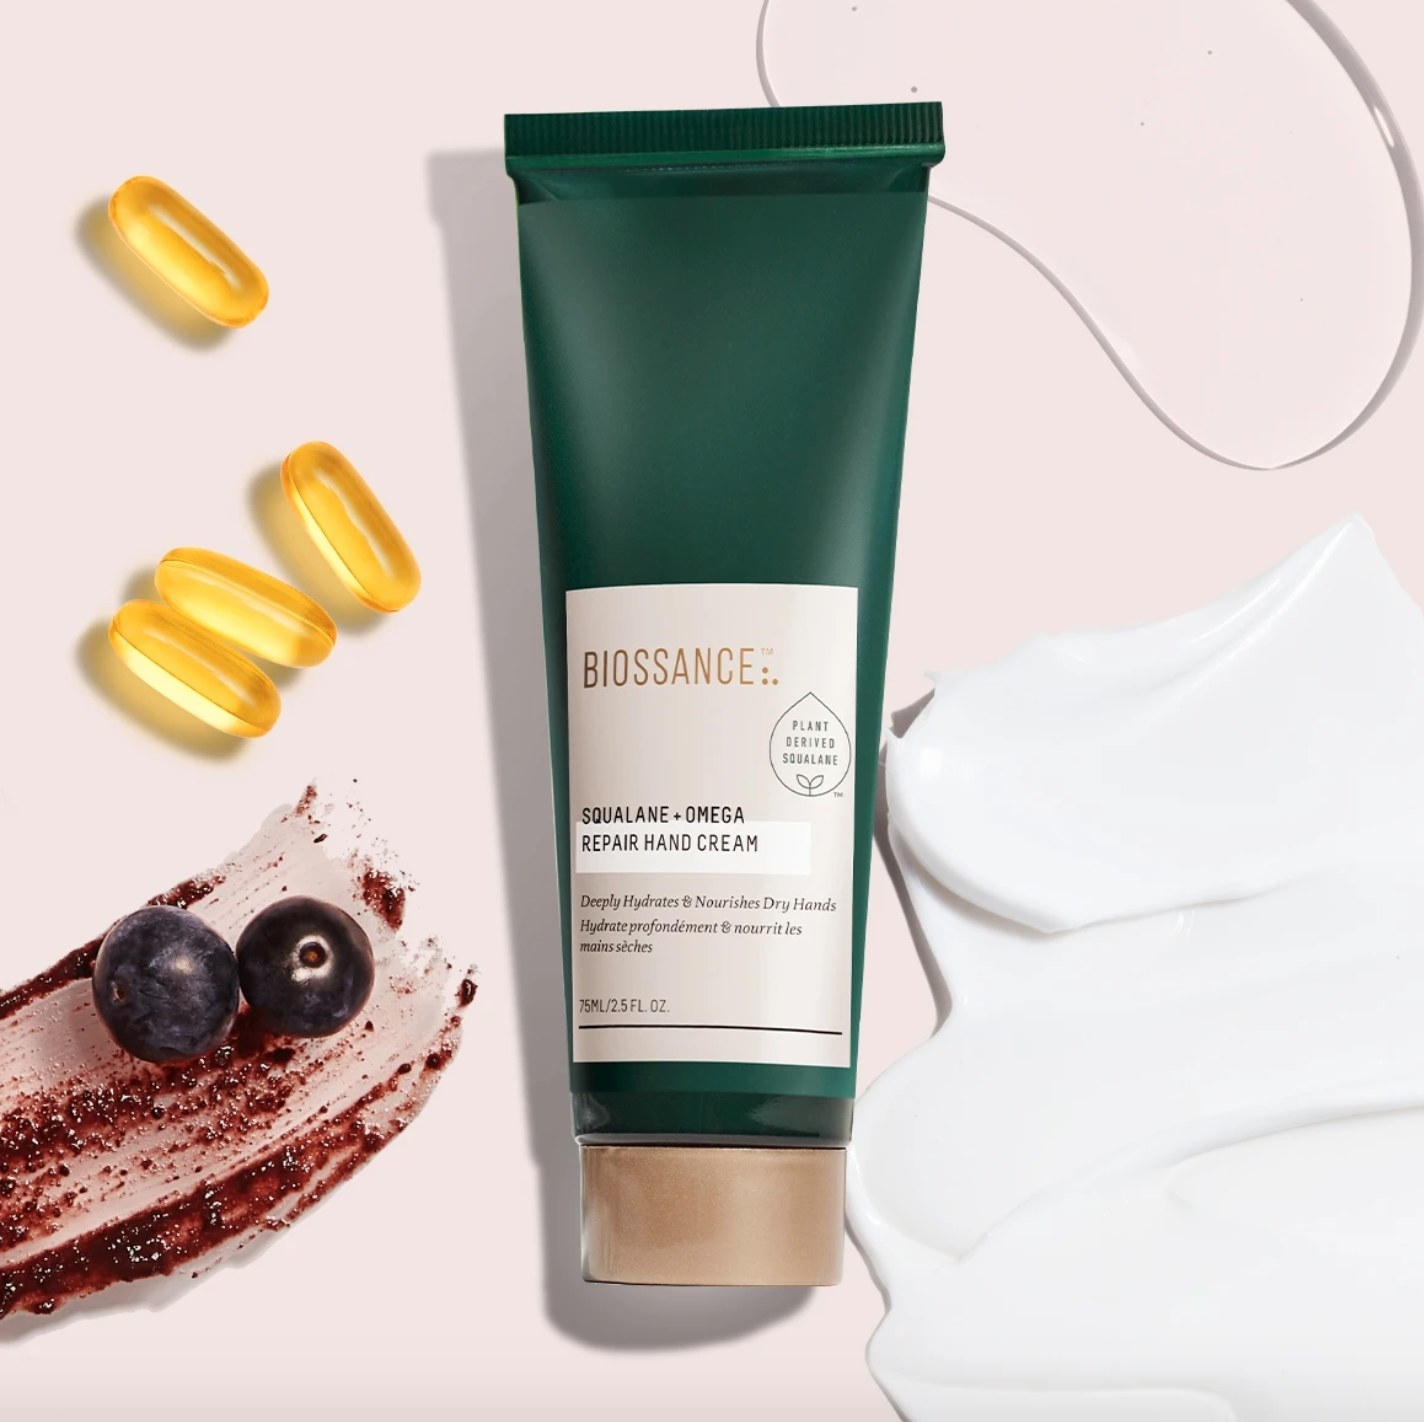 The squalane and omega repair hand cream in a green squeeze bottle